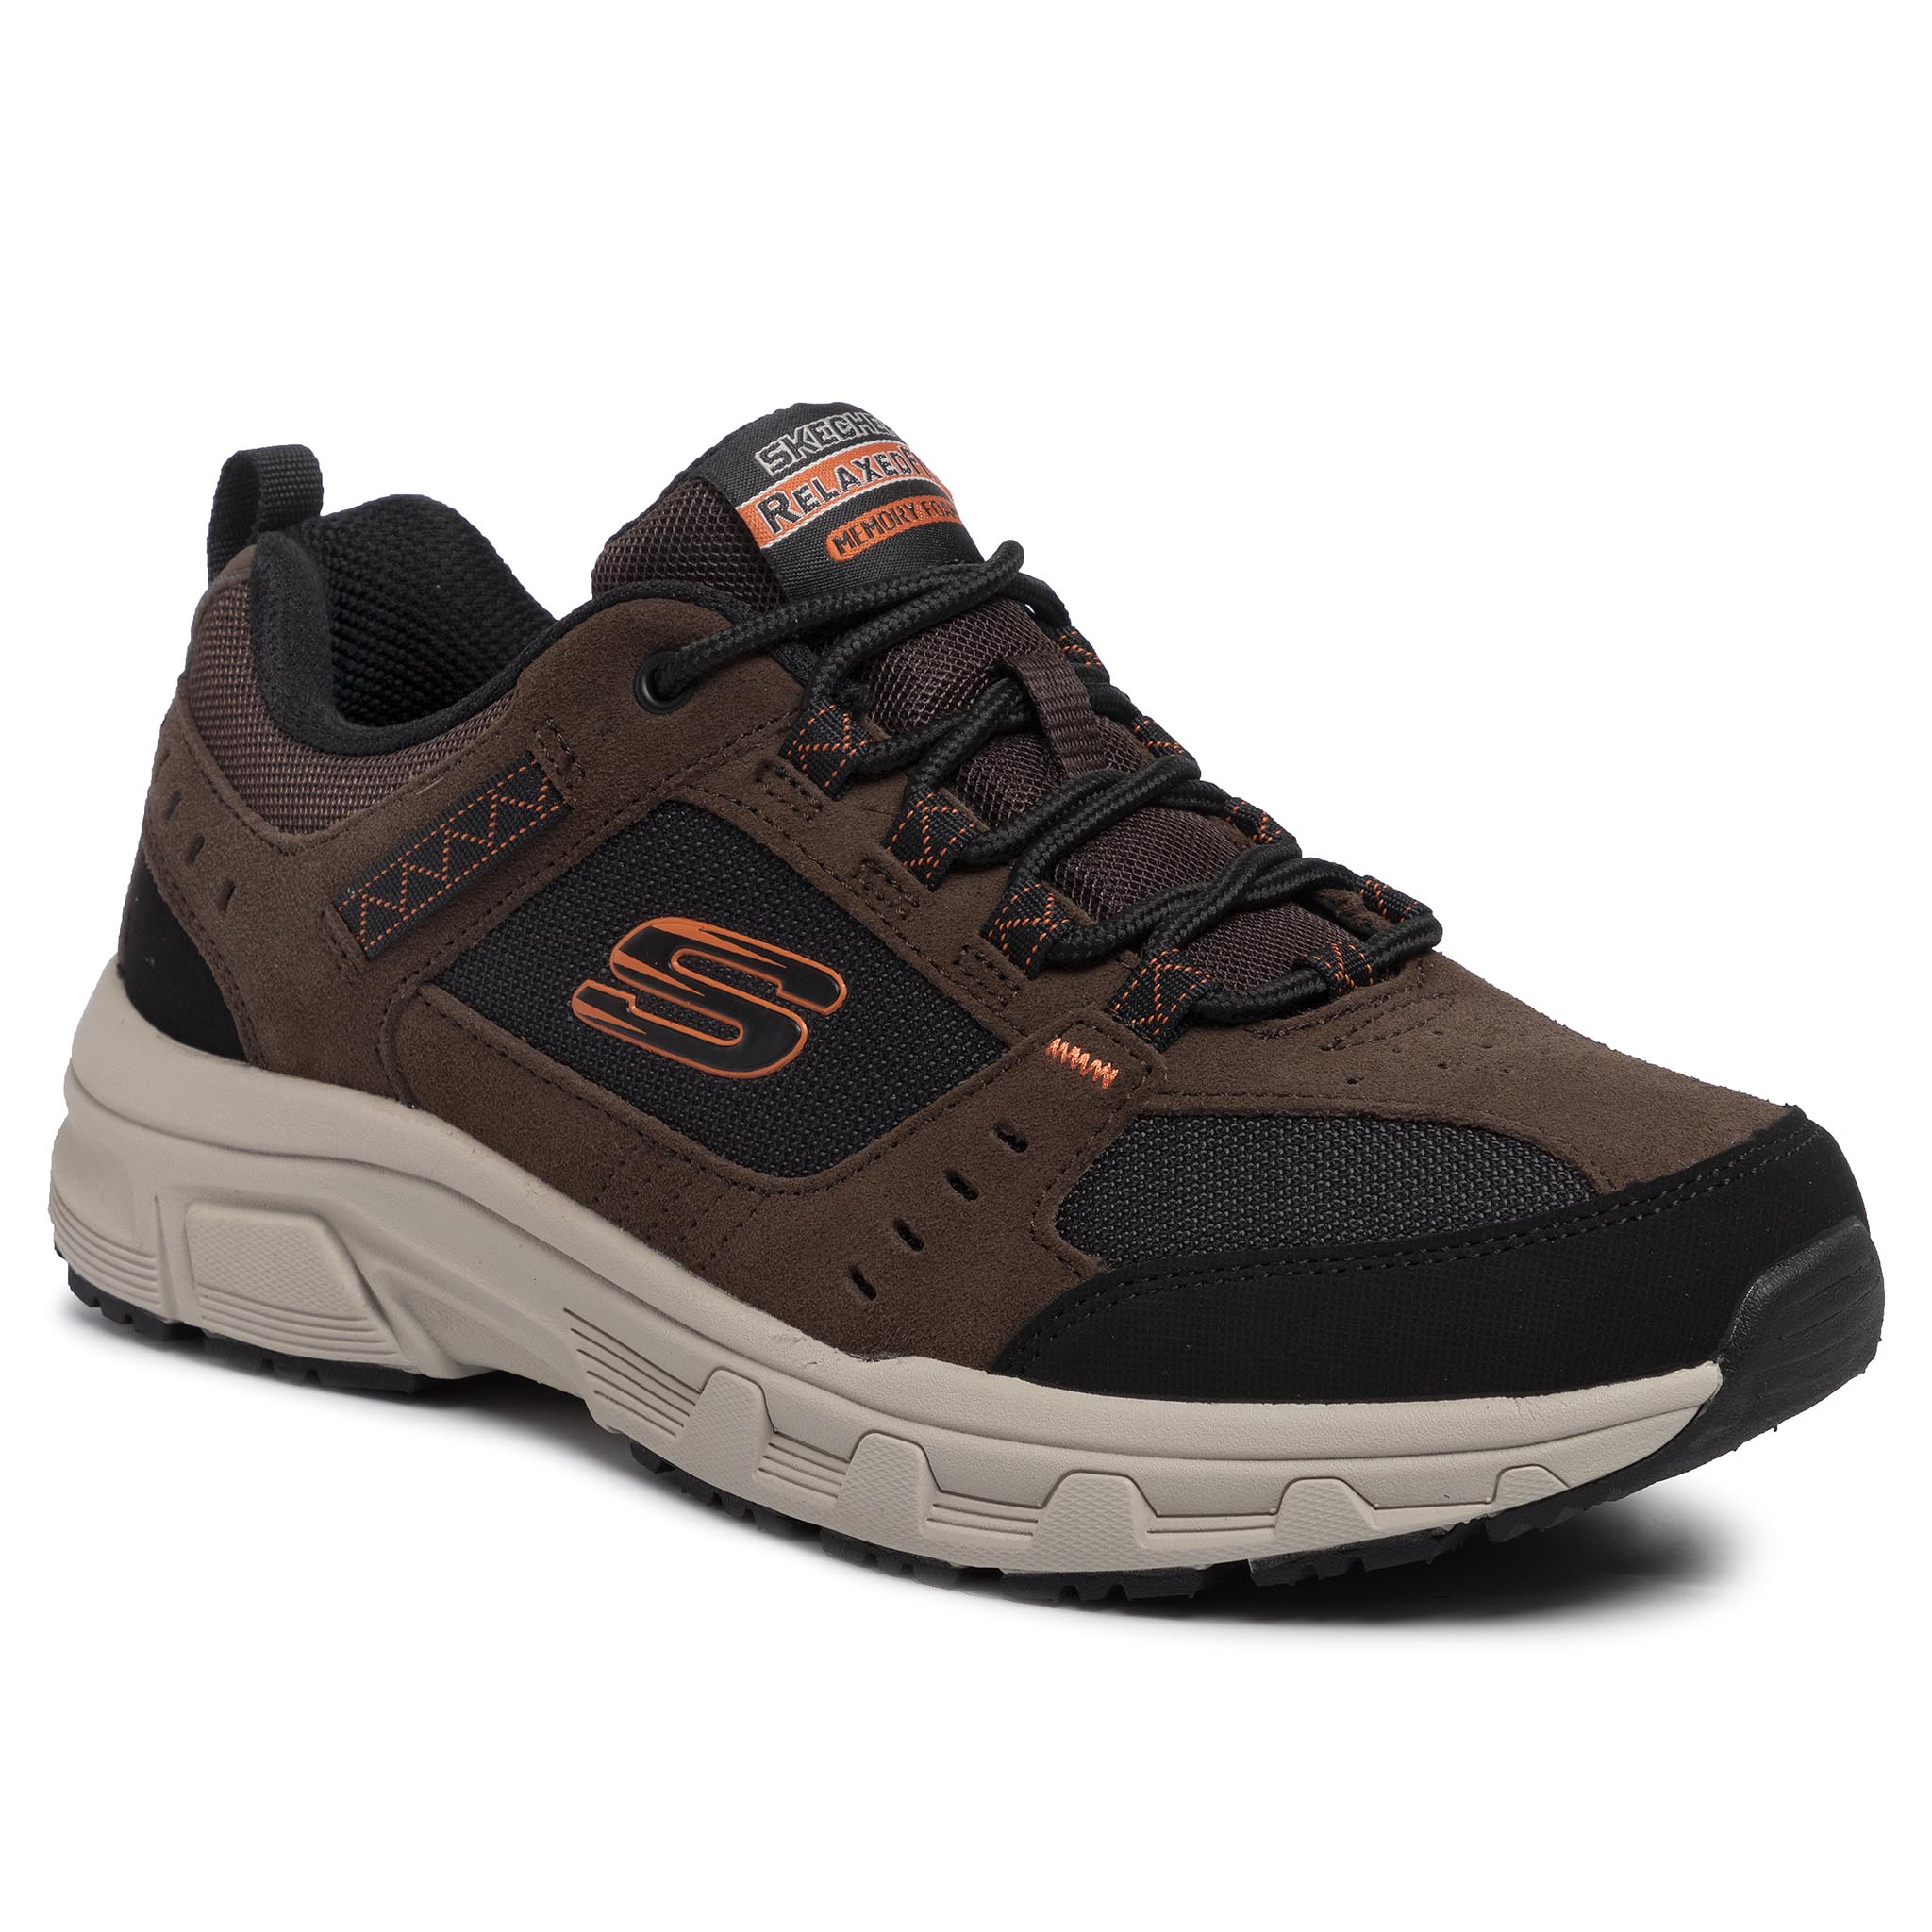 Trekkings SKECHERS - Oak Canyon 51893/CHBK Chocolate/Black